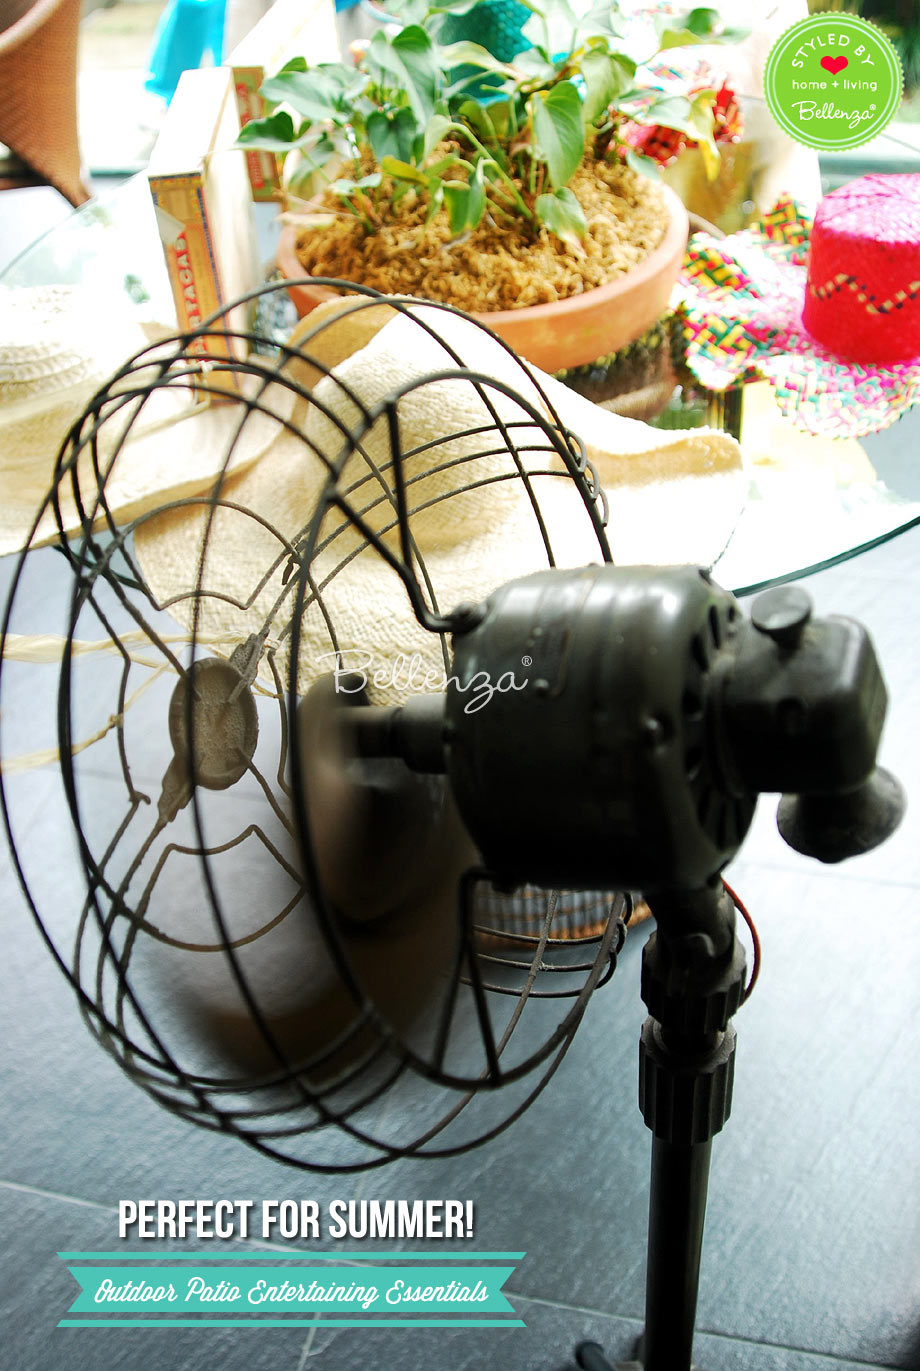 Vintage fan for outdoor patio entertaining.